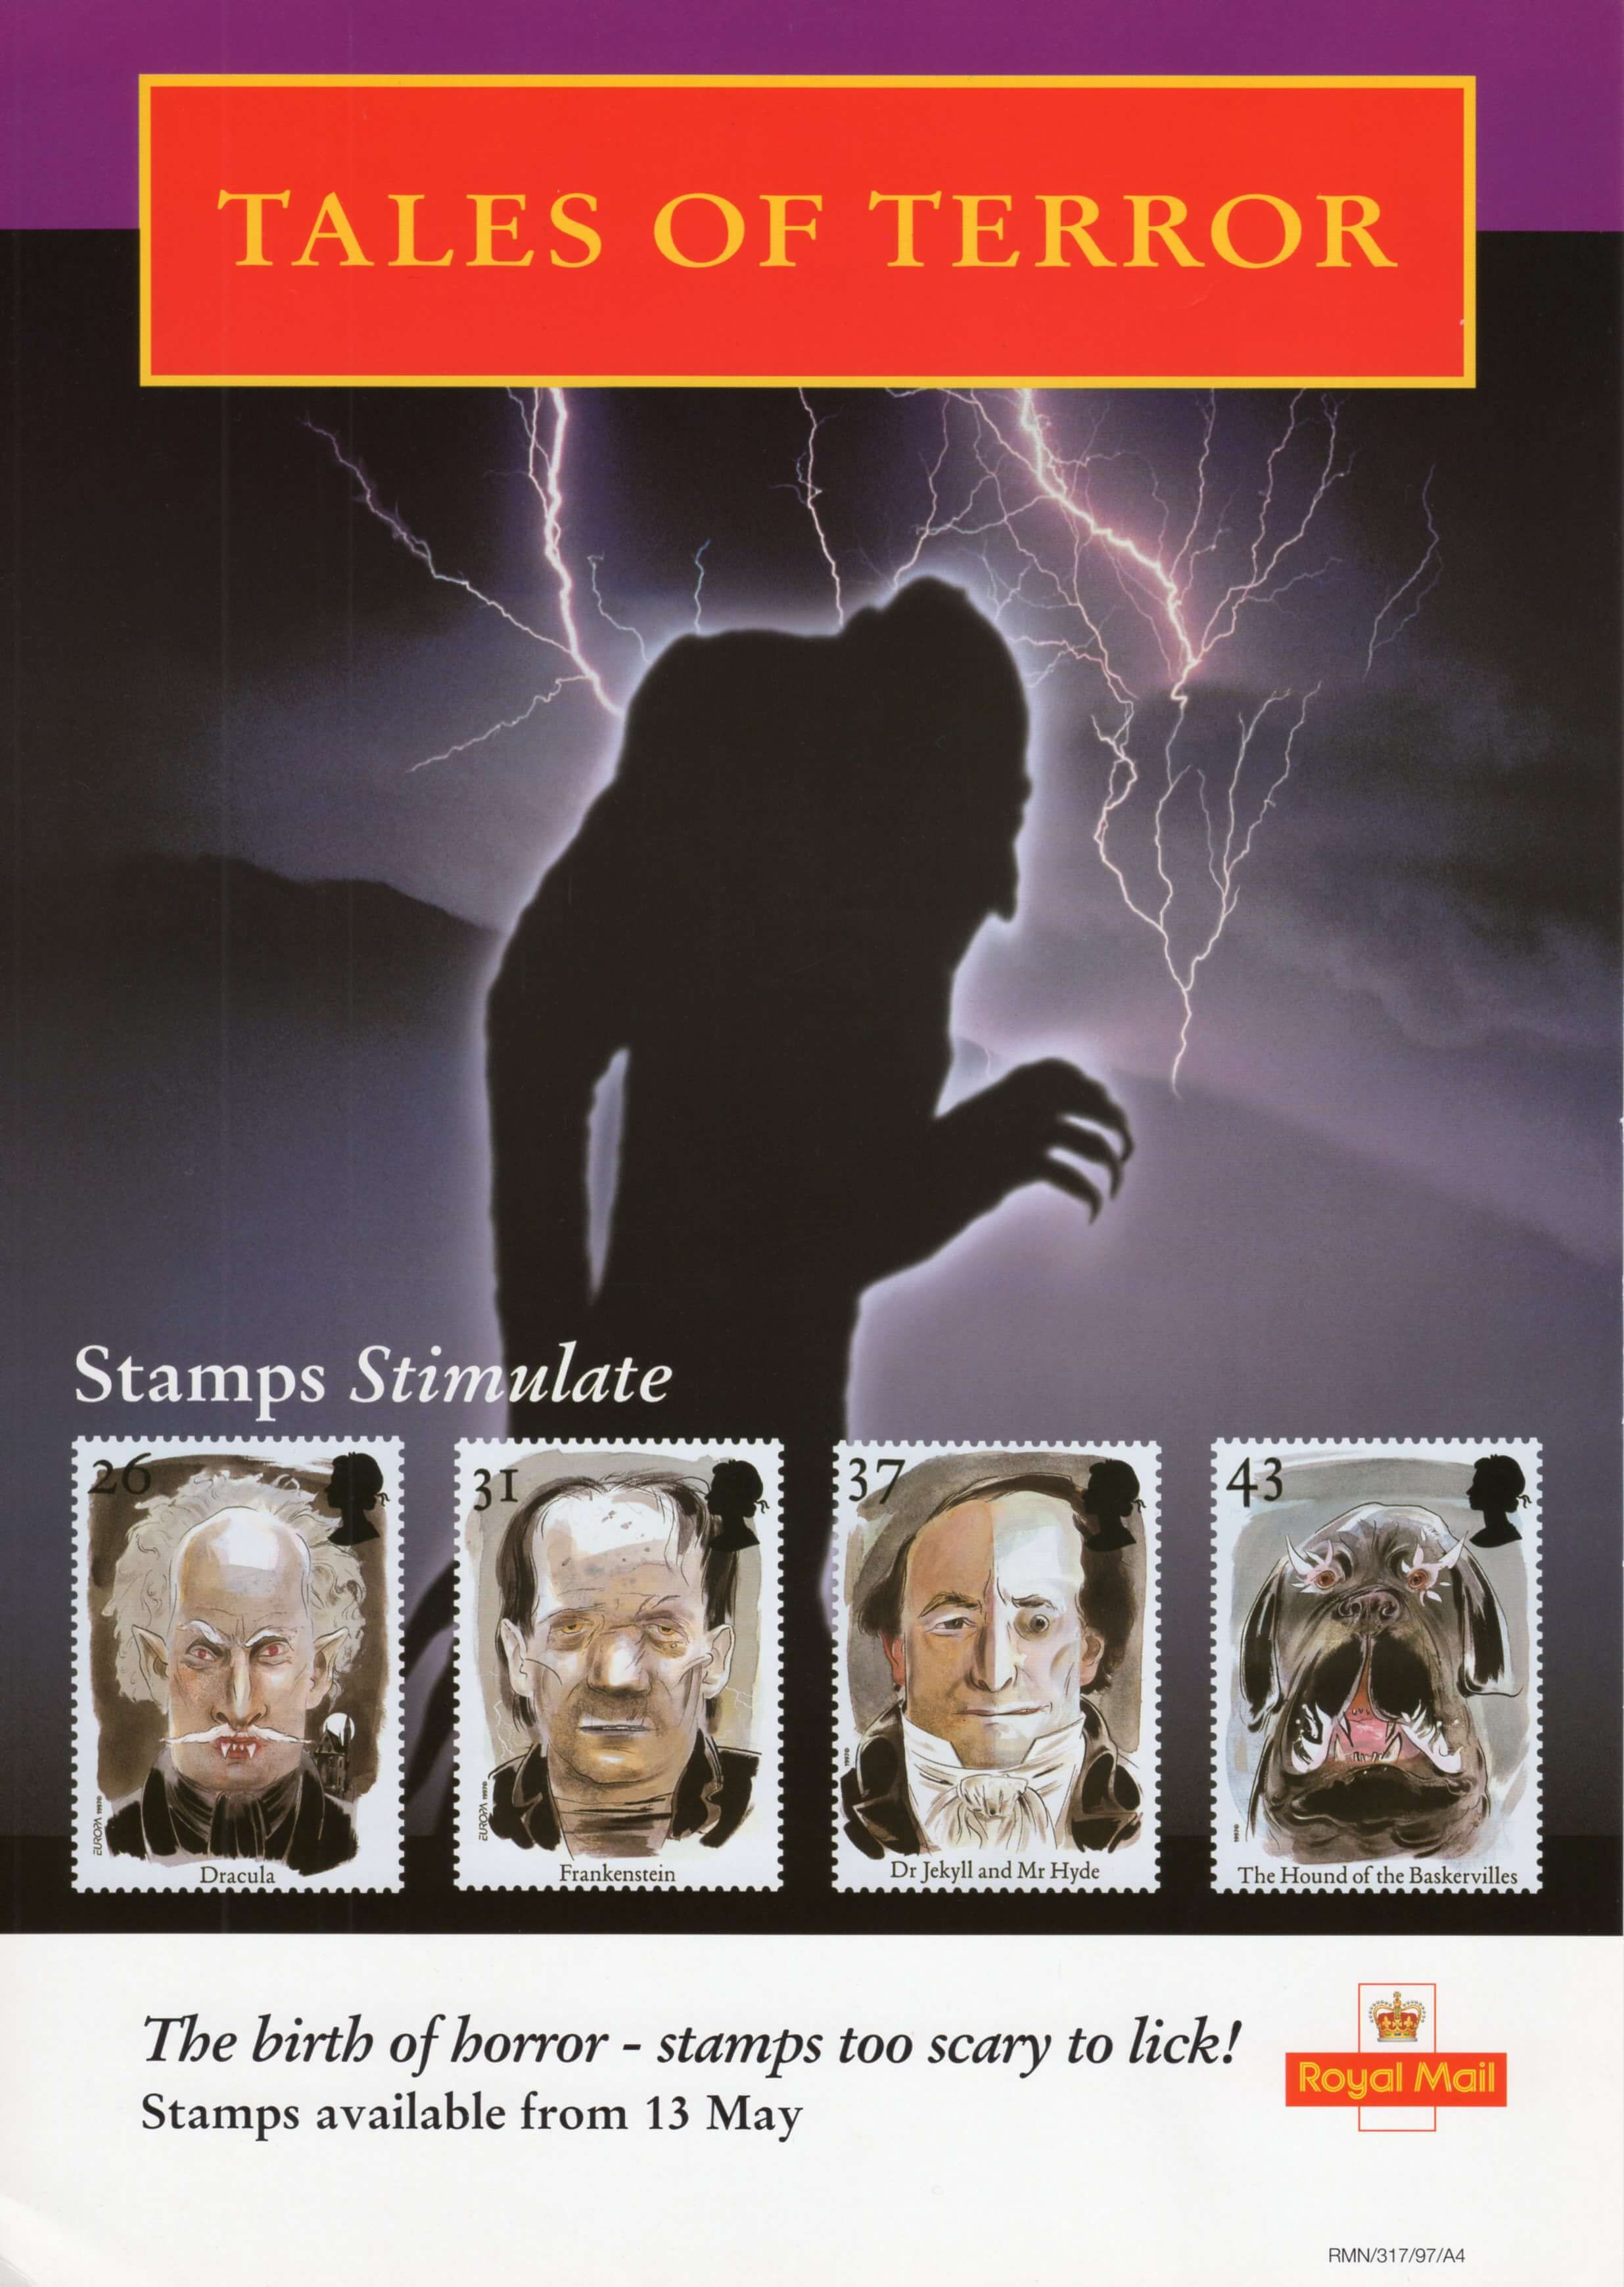 Royal Mail poster for the 1997 Tales of Terror stamp issue